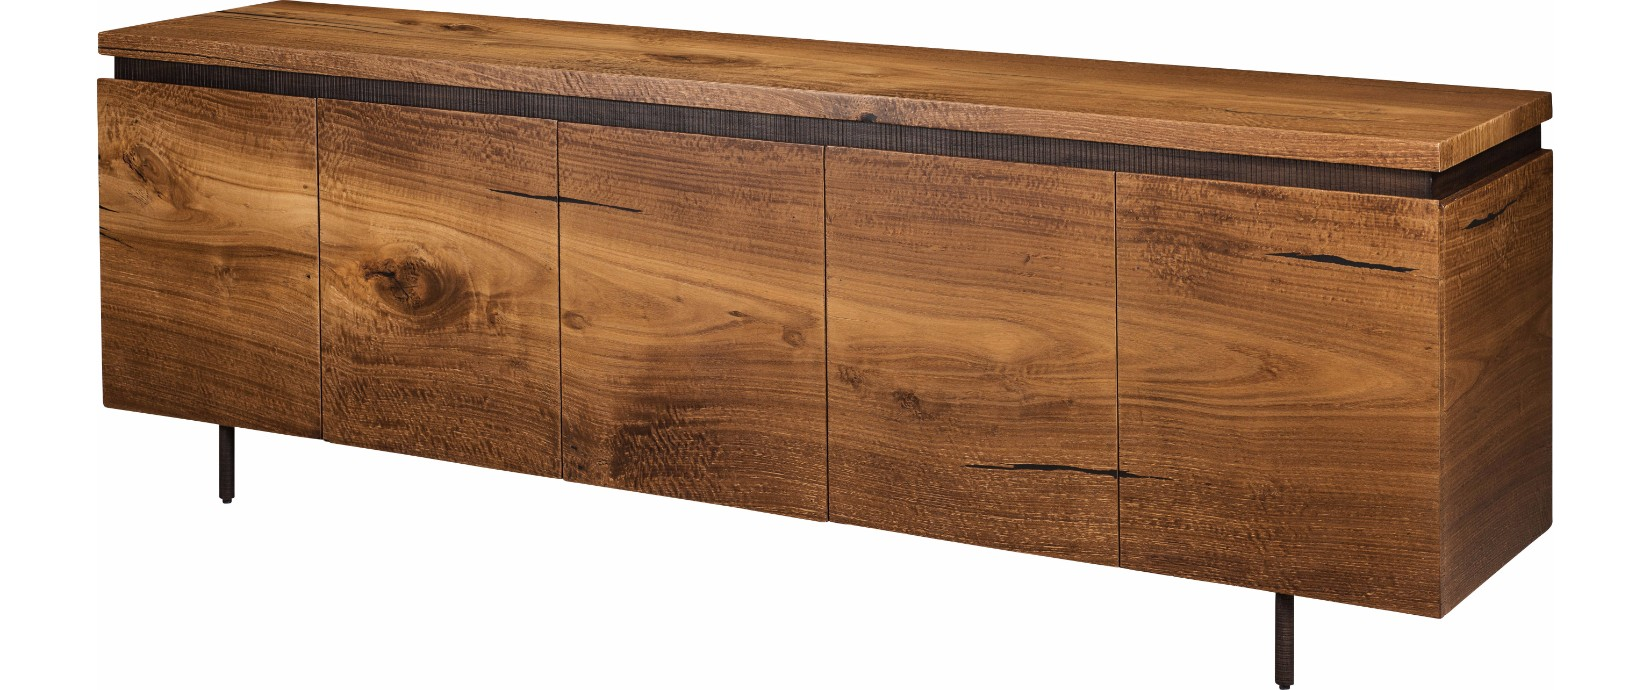 Bastian buffet taracea for Sideboard 240